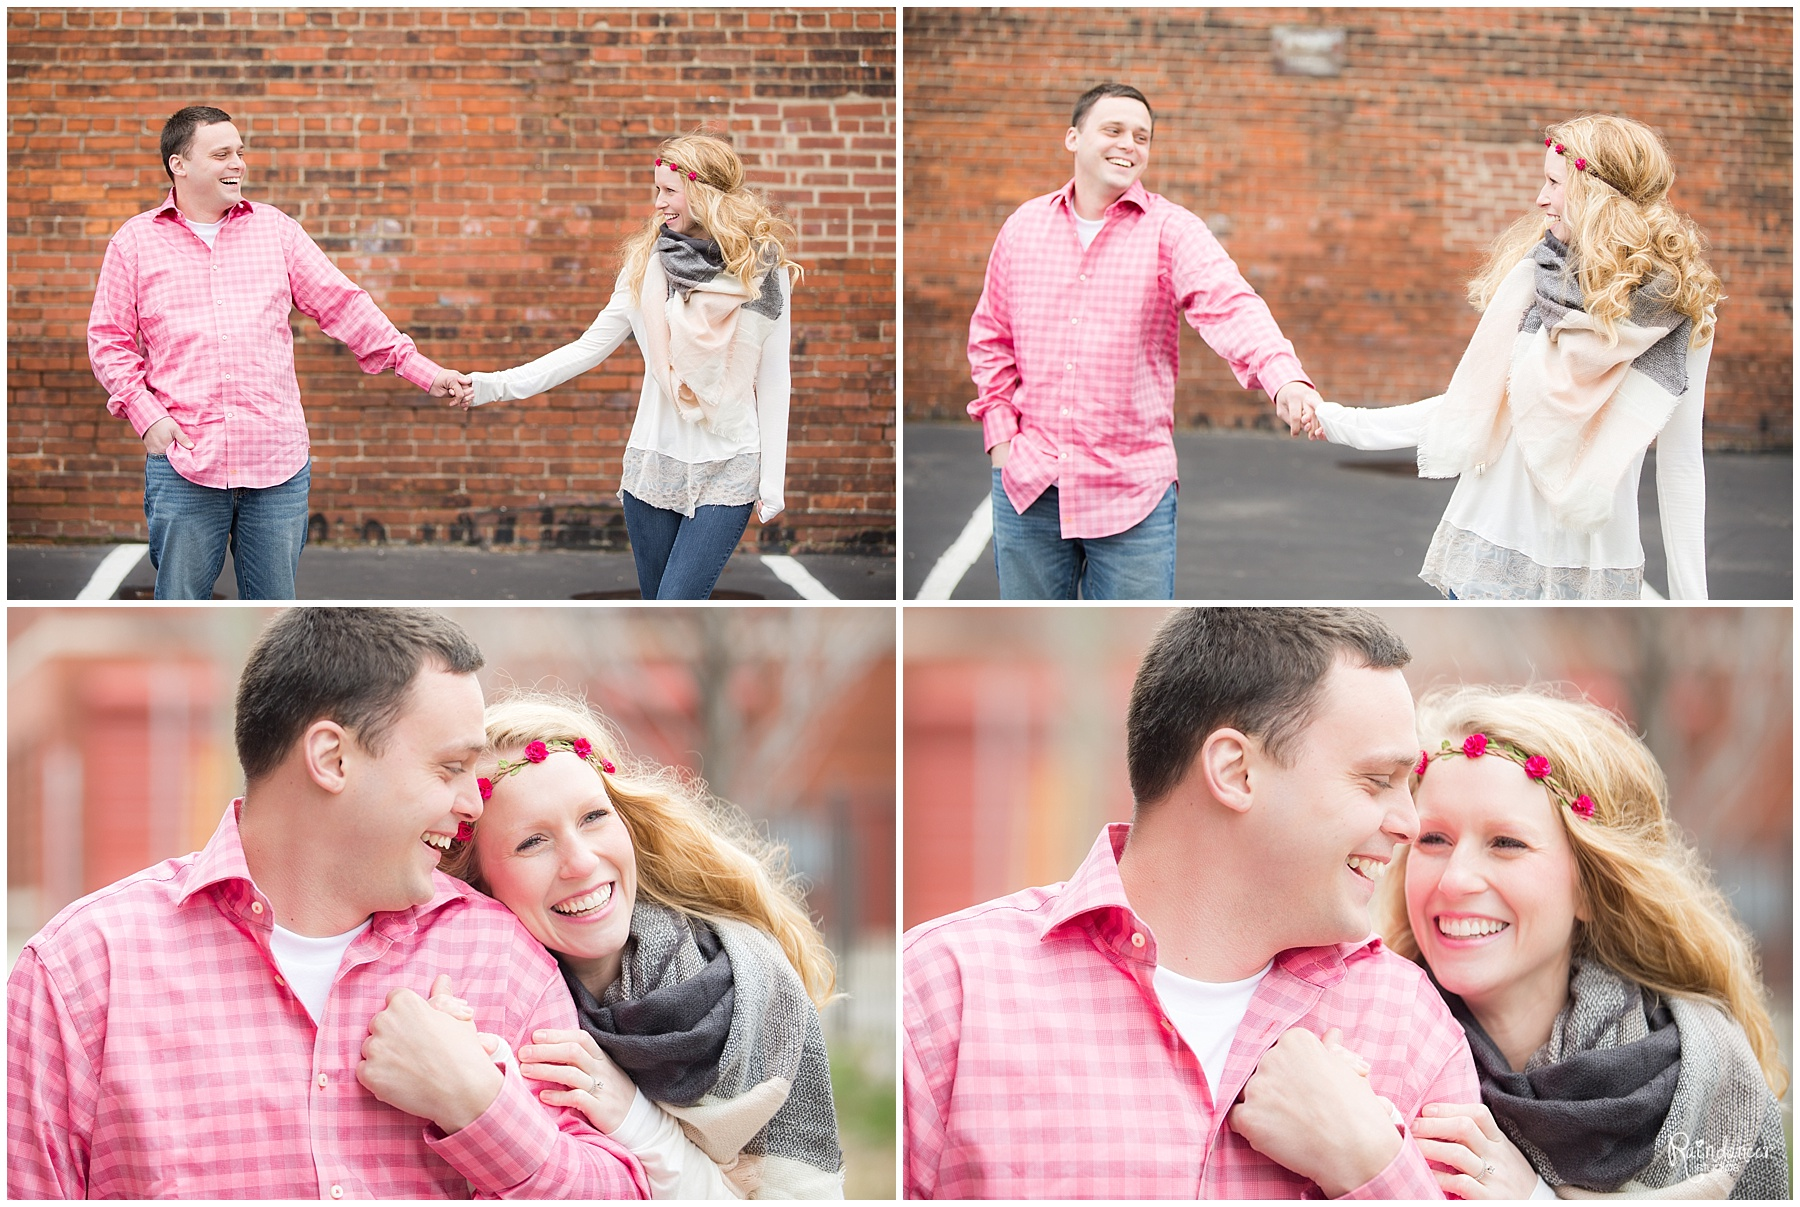 Indianapolis engagement photographer, Indy engagement photographer, Indy engagement photography, Indianapolis engagement photography, Indianapolis wedding photographer, Indianapolis wedding photography, Indy wedding photographer, Indy wedding photography